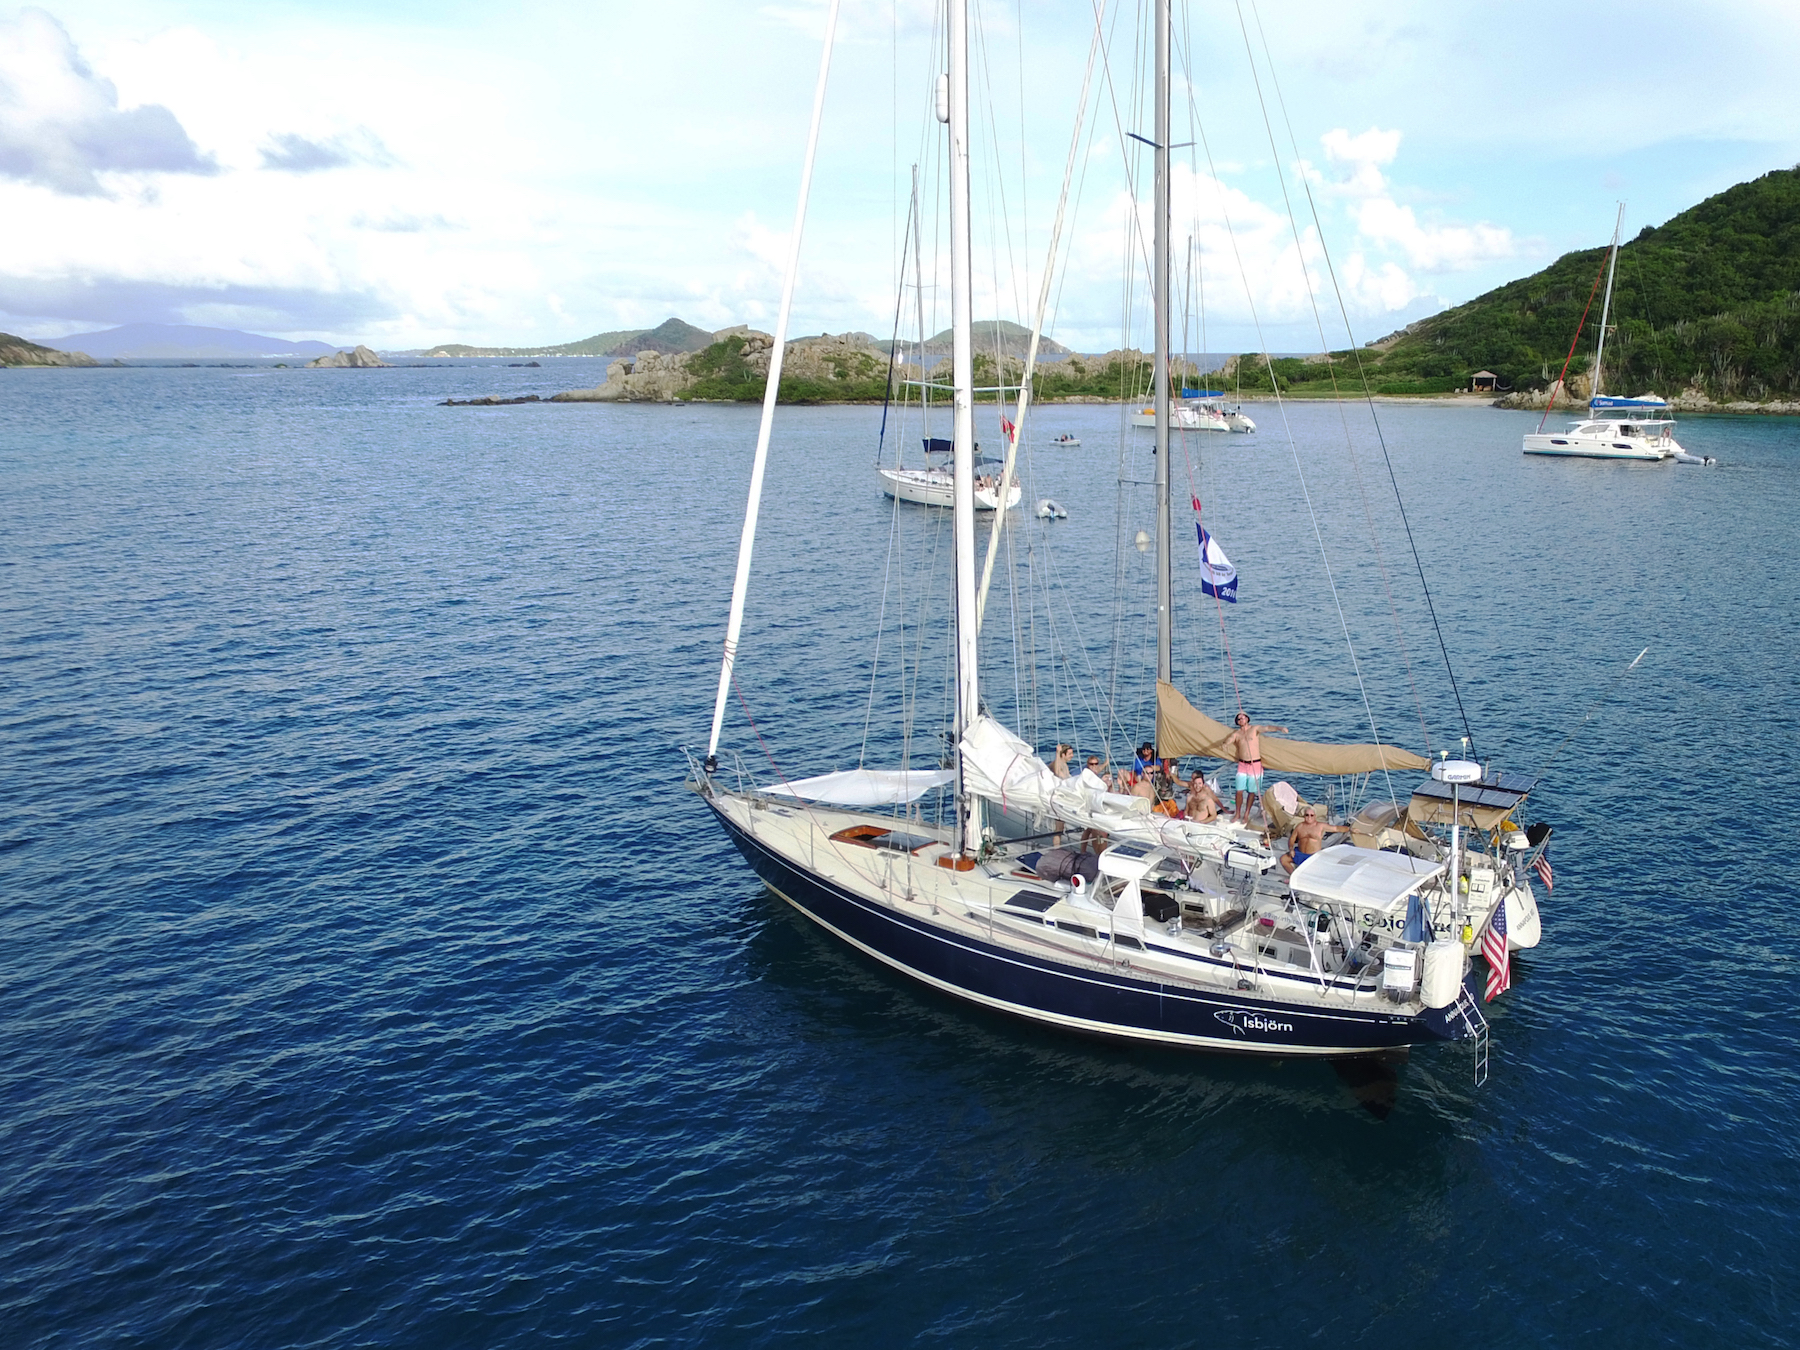 Raft up with Sojourner in the BVI, November 2016